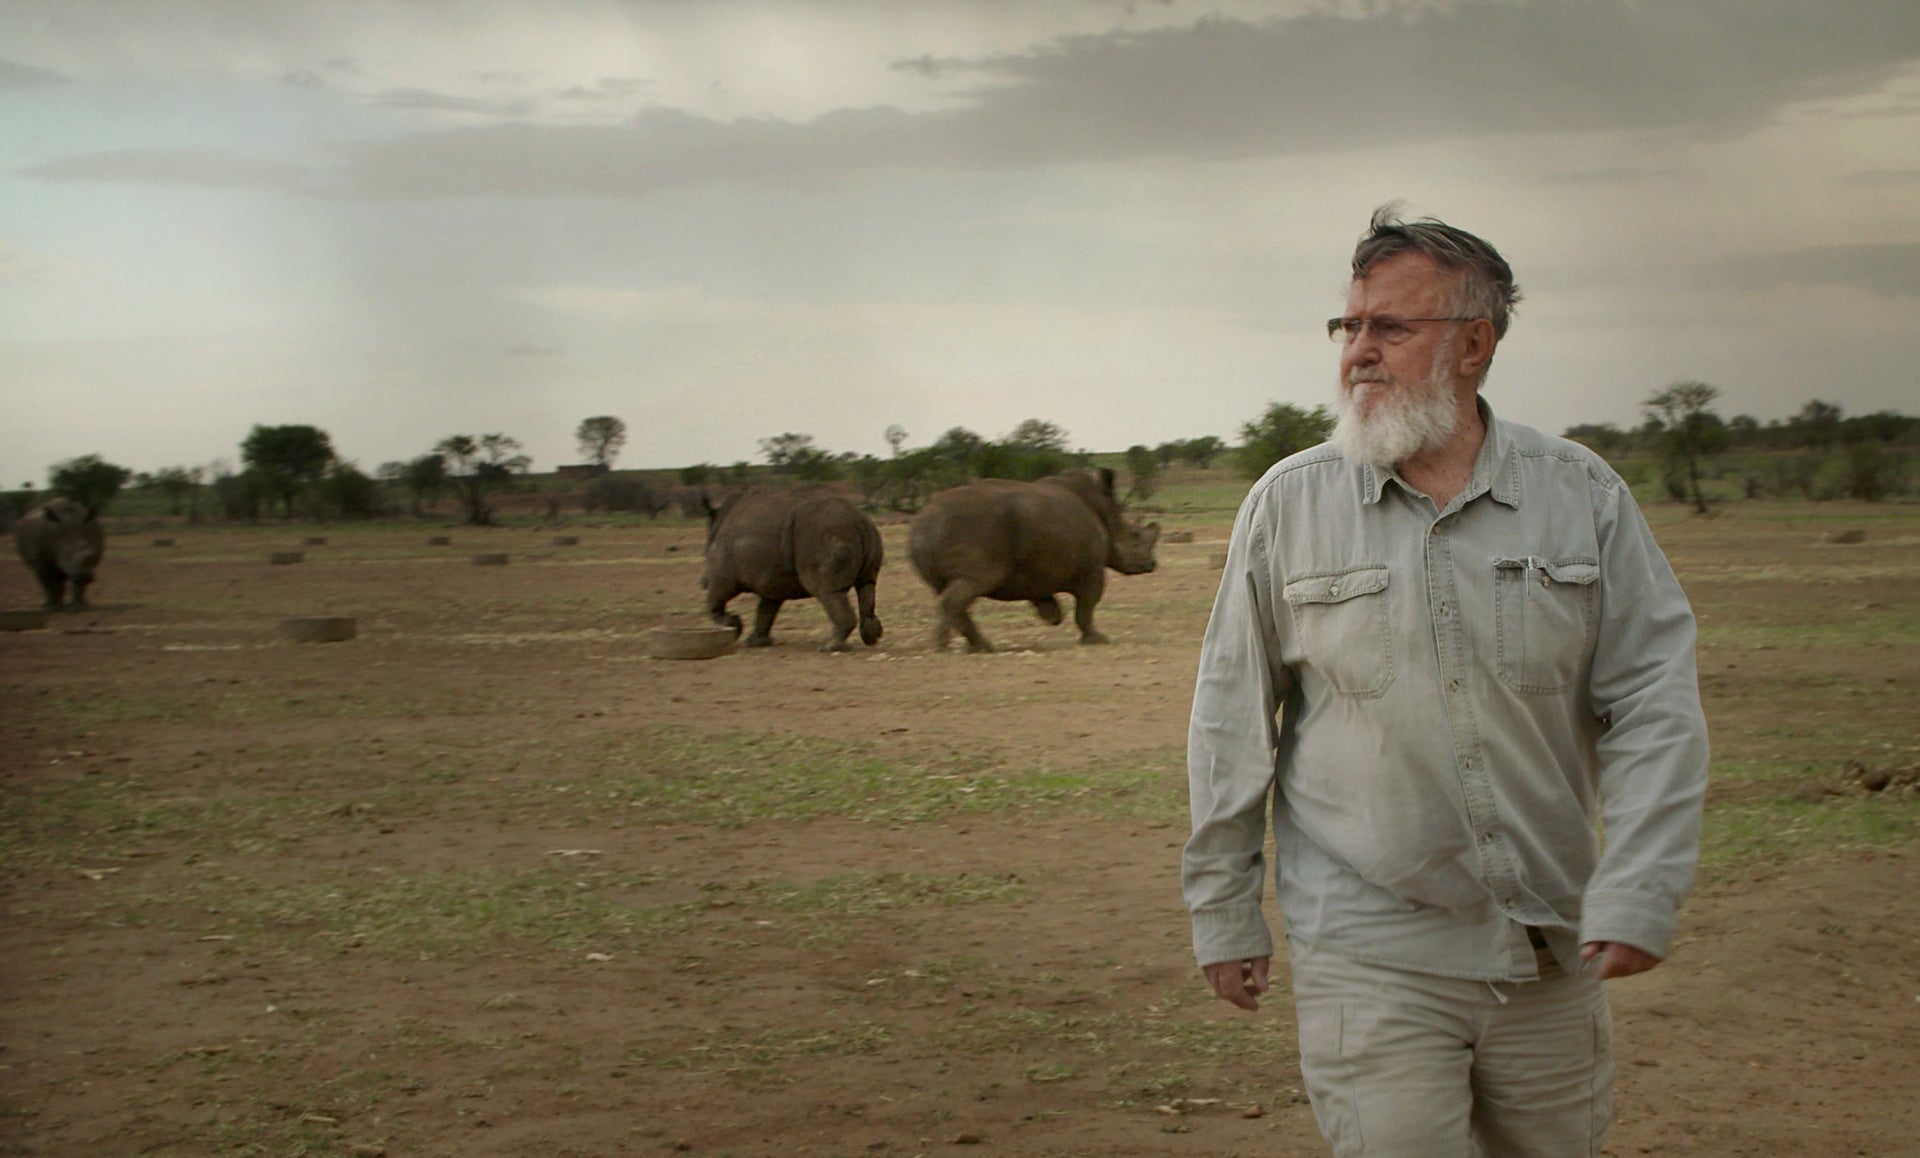 Rhino ranch owner John Hume. 'Trohpy' does not portray him as scum.